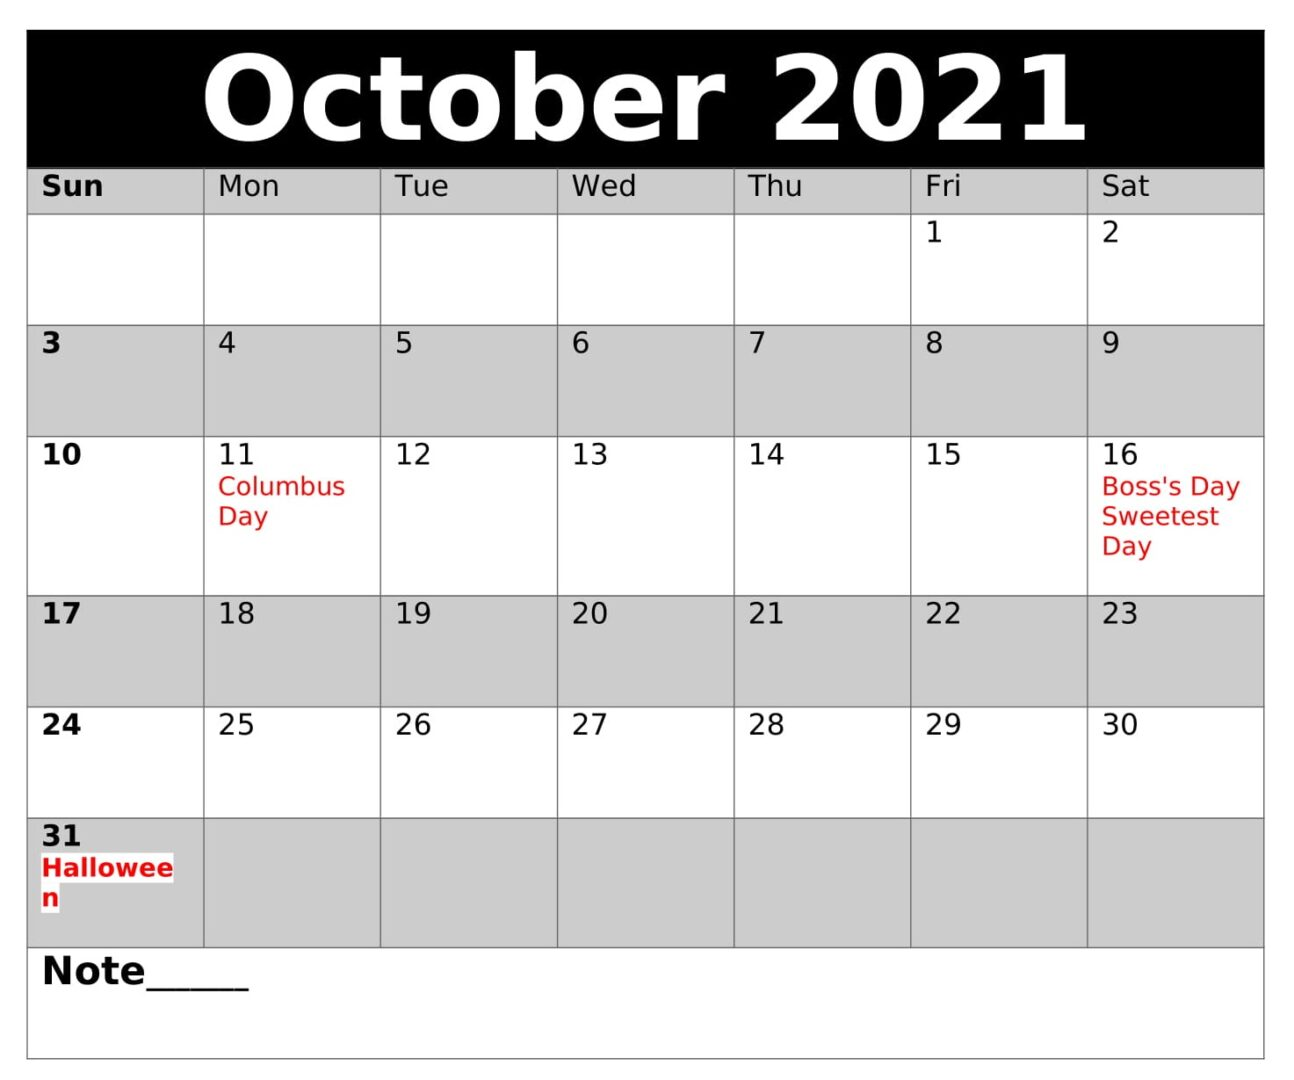 Download October 2021 Calendar With Holidays